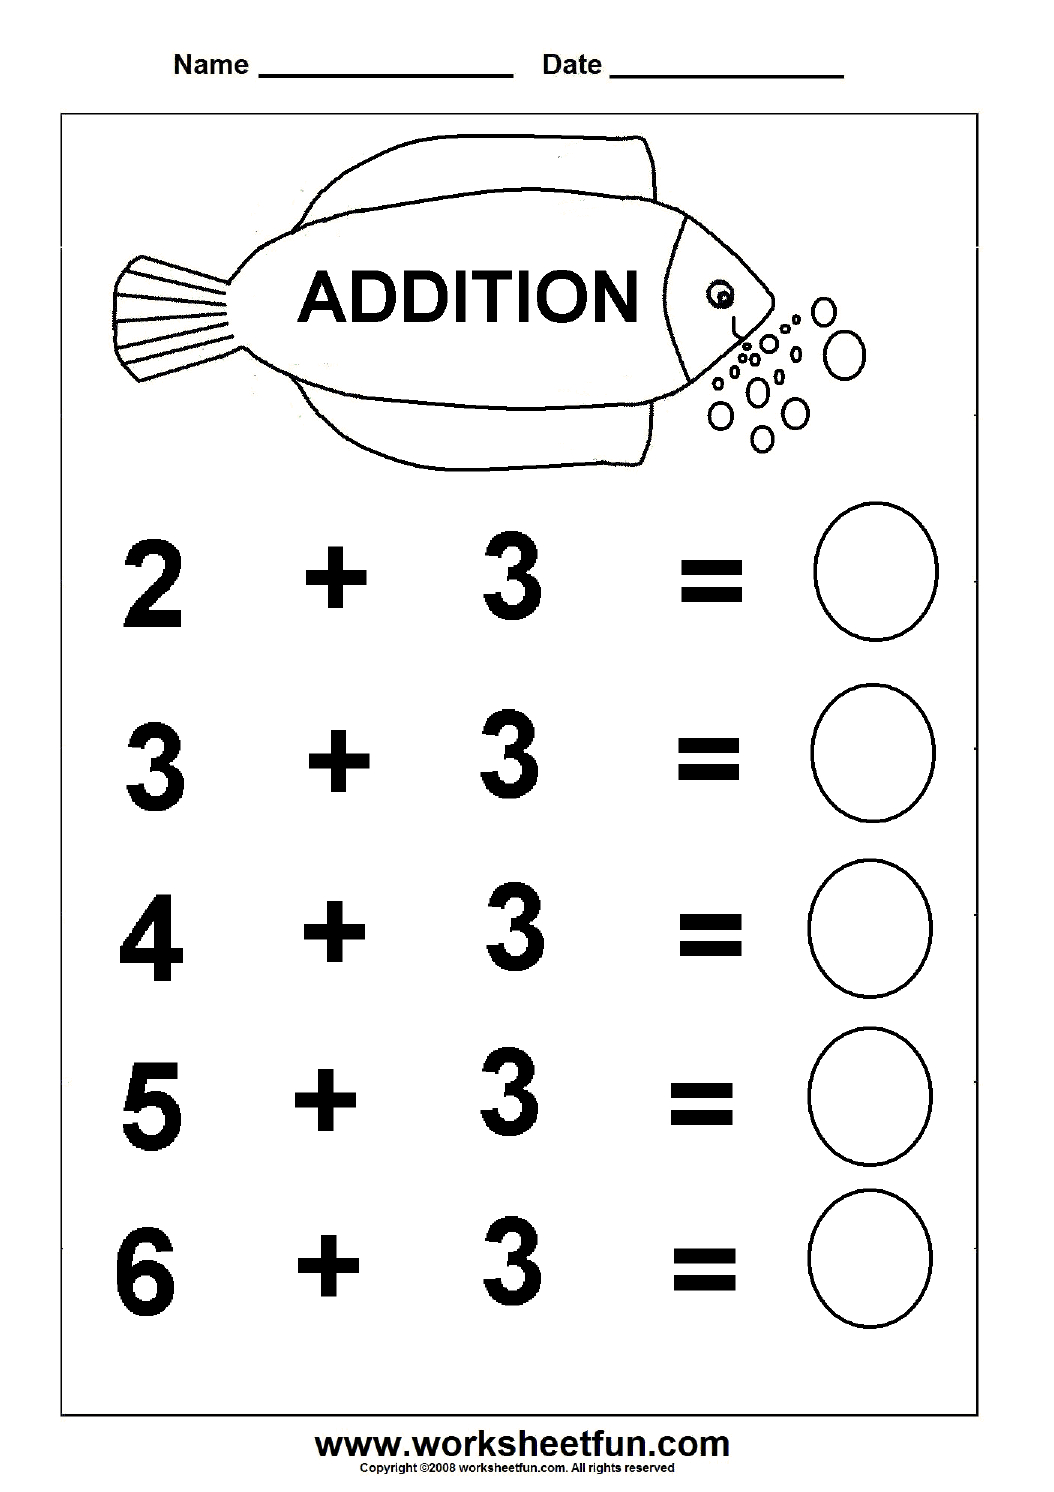 Beginner Addition – 6 Kindergarten Addition Worksheets / Free | Printable Addition Worksheets Kindergarten